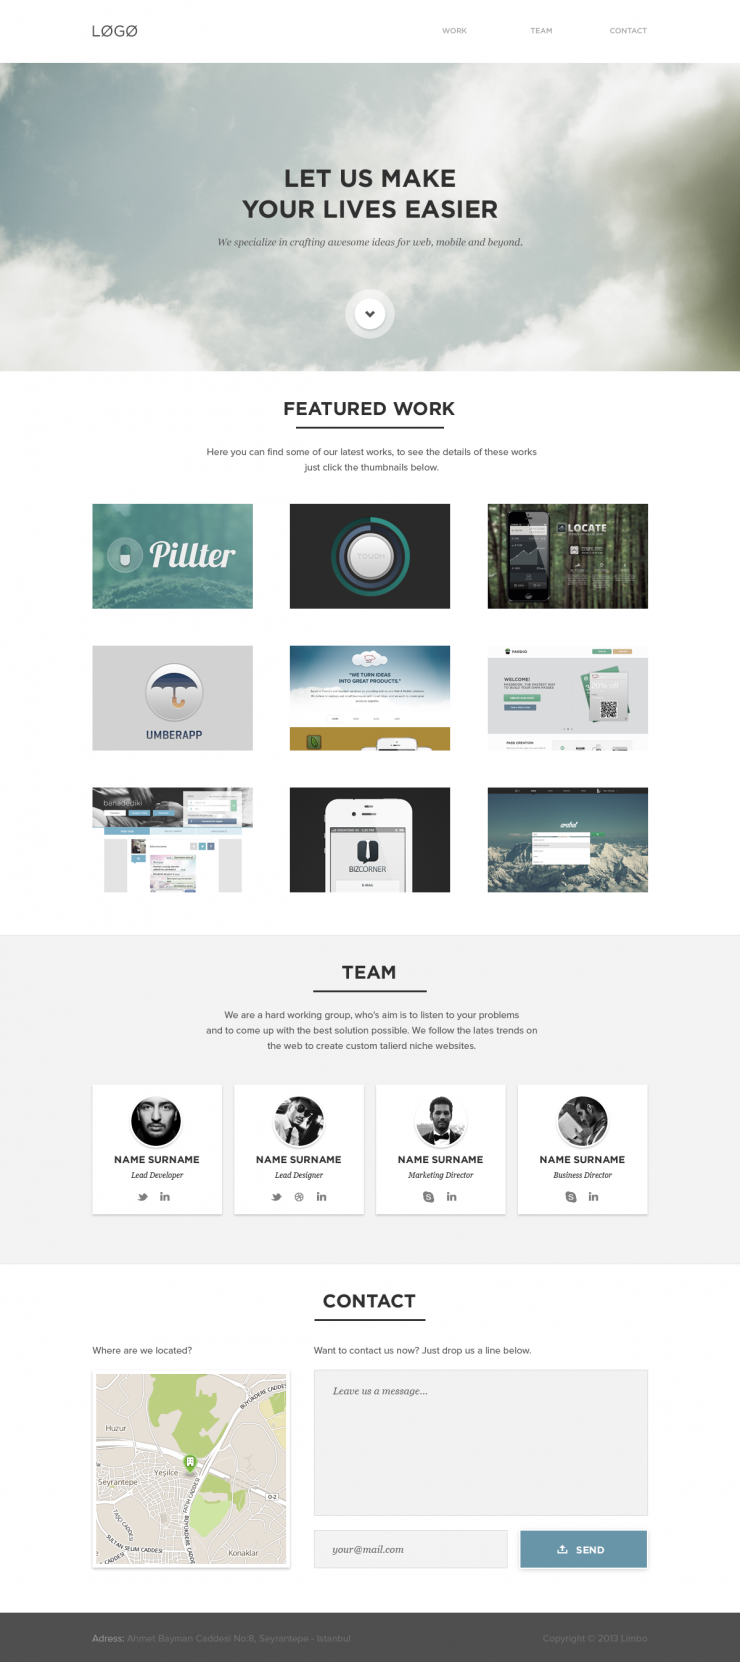 Clean White Portfolio Website Template PSD www, Work, White, Website Template, Website Layout, Website, webpage, Web Template, Web Resources, web page, Web Layout, Web Interface, Web Elements, Web Design, Web, User Interface, unique, UI, Template, Stylish, smiple, Resources, Quality, Psd Templates, Portfolio, pack, original, new, HD, Fresh, flat psd template, flat psd, Flat Design, Flat, Featured, Elements, detailed, Design, Creative, Corporate, Contact, Clean,